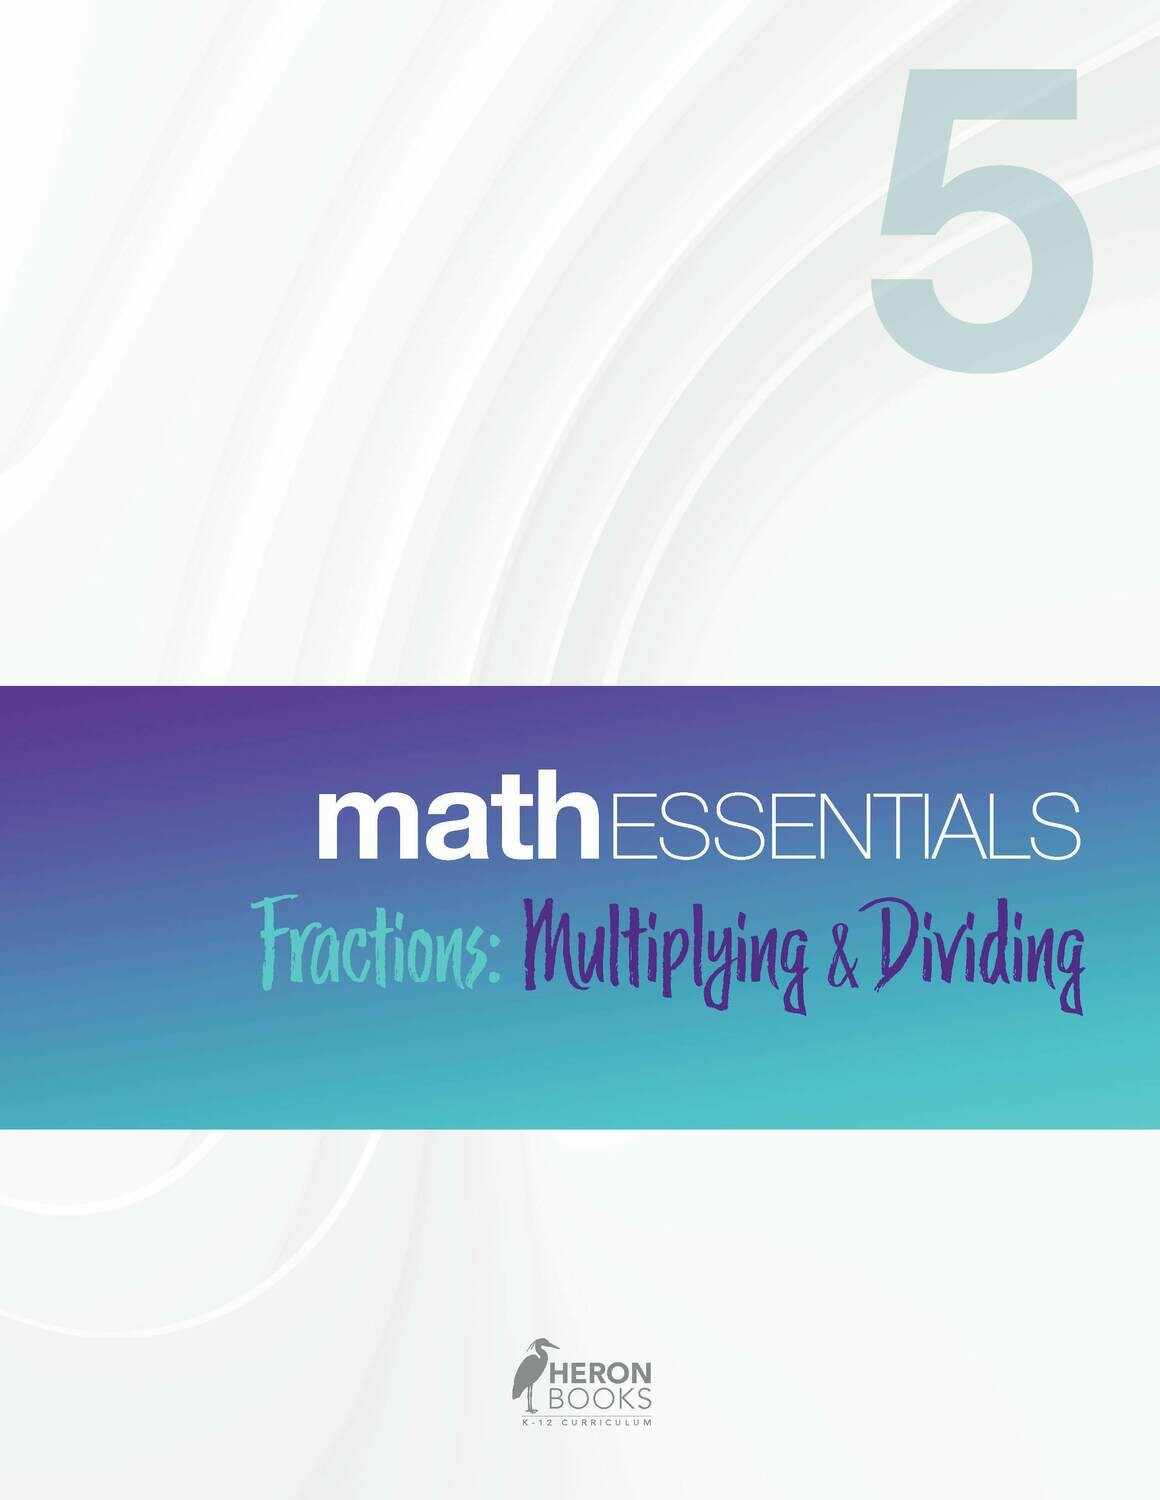 Math Essentials 5 - Fractions, Multiplying & Dividing